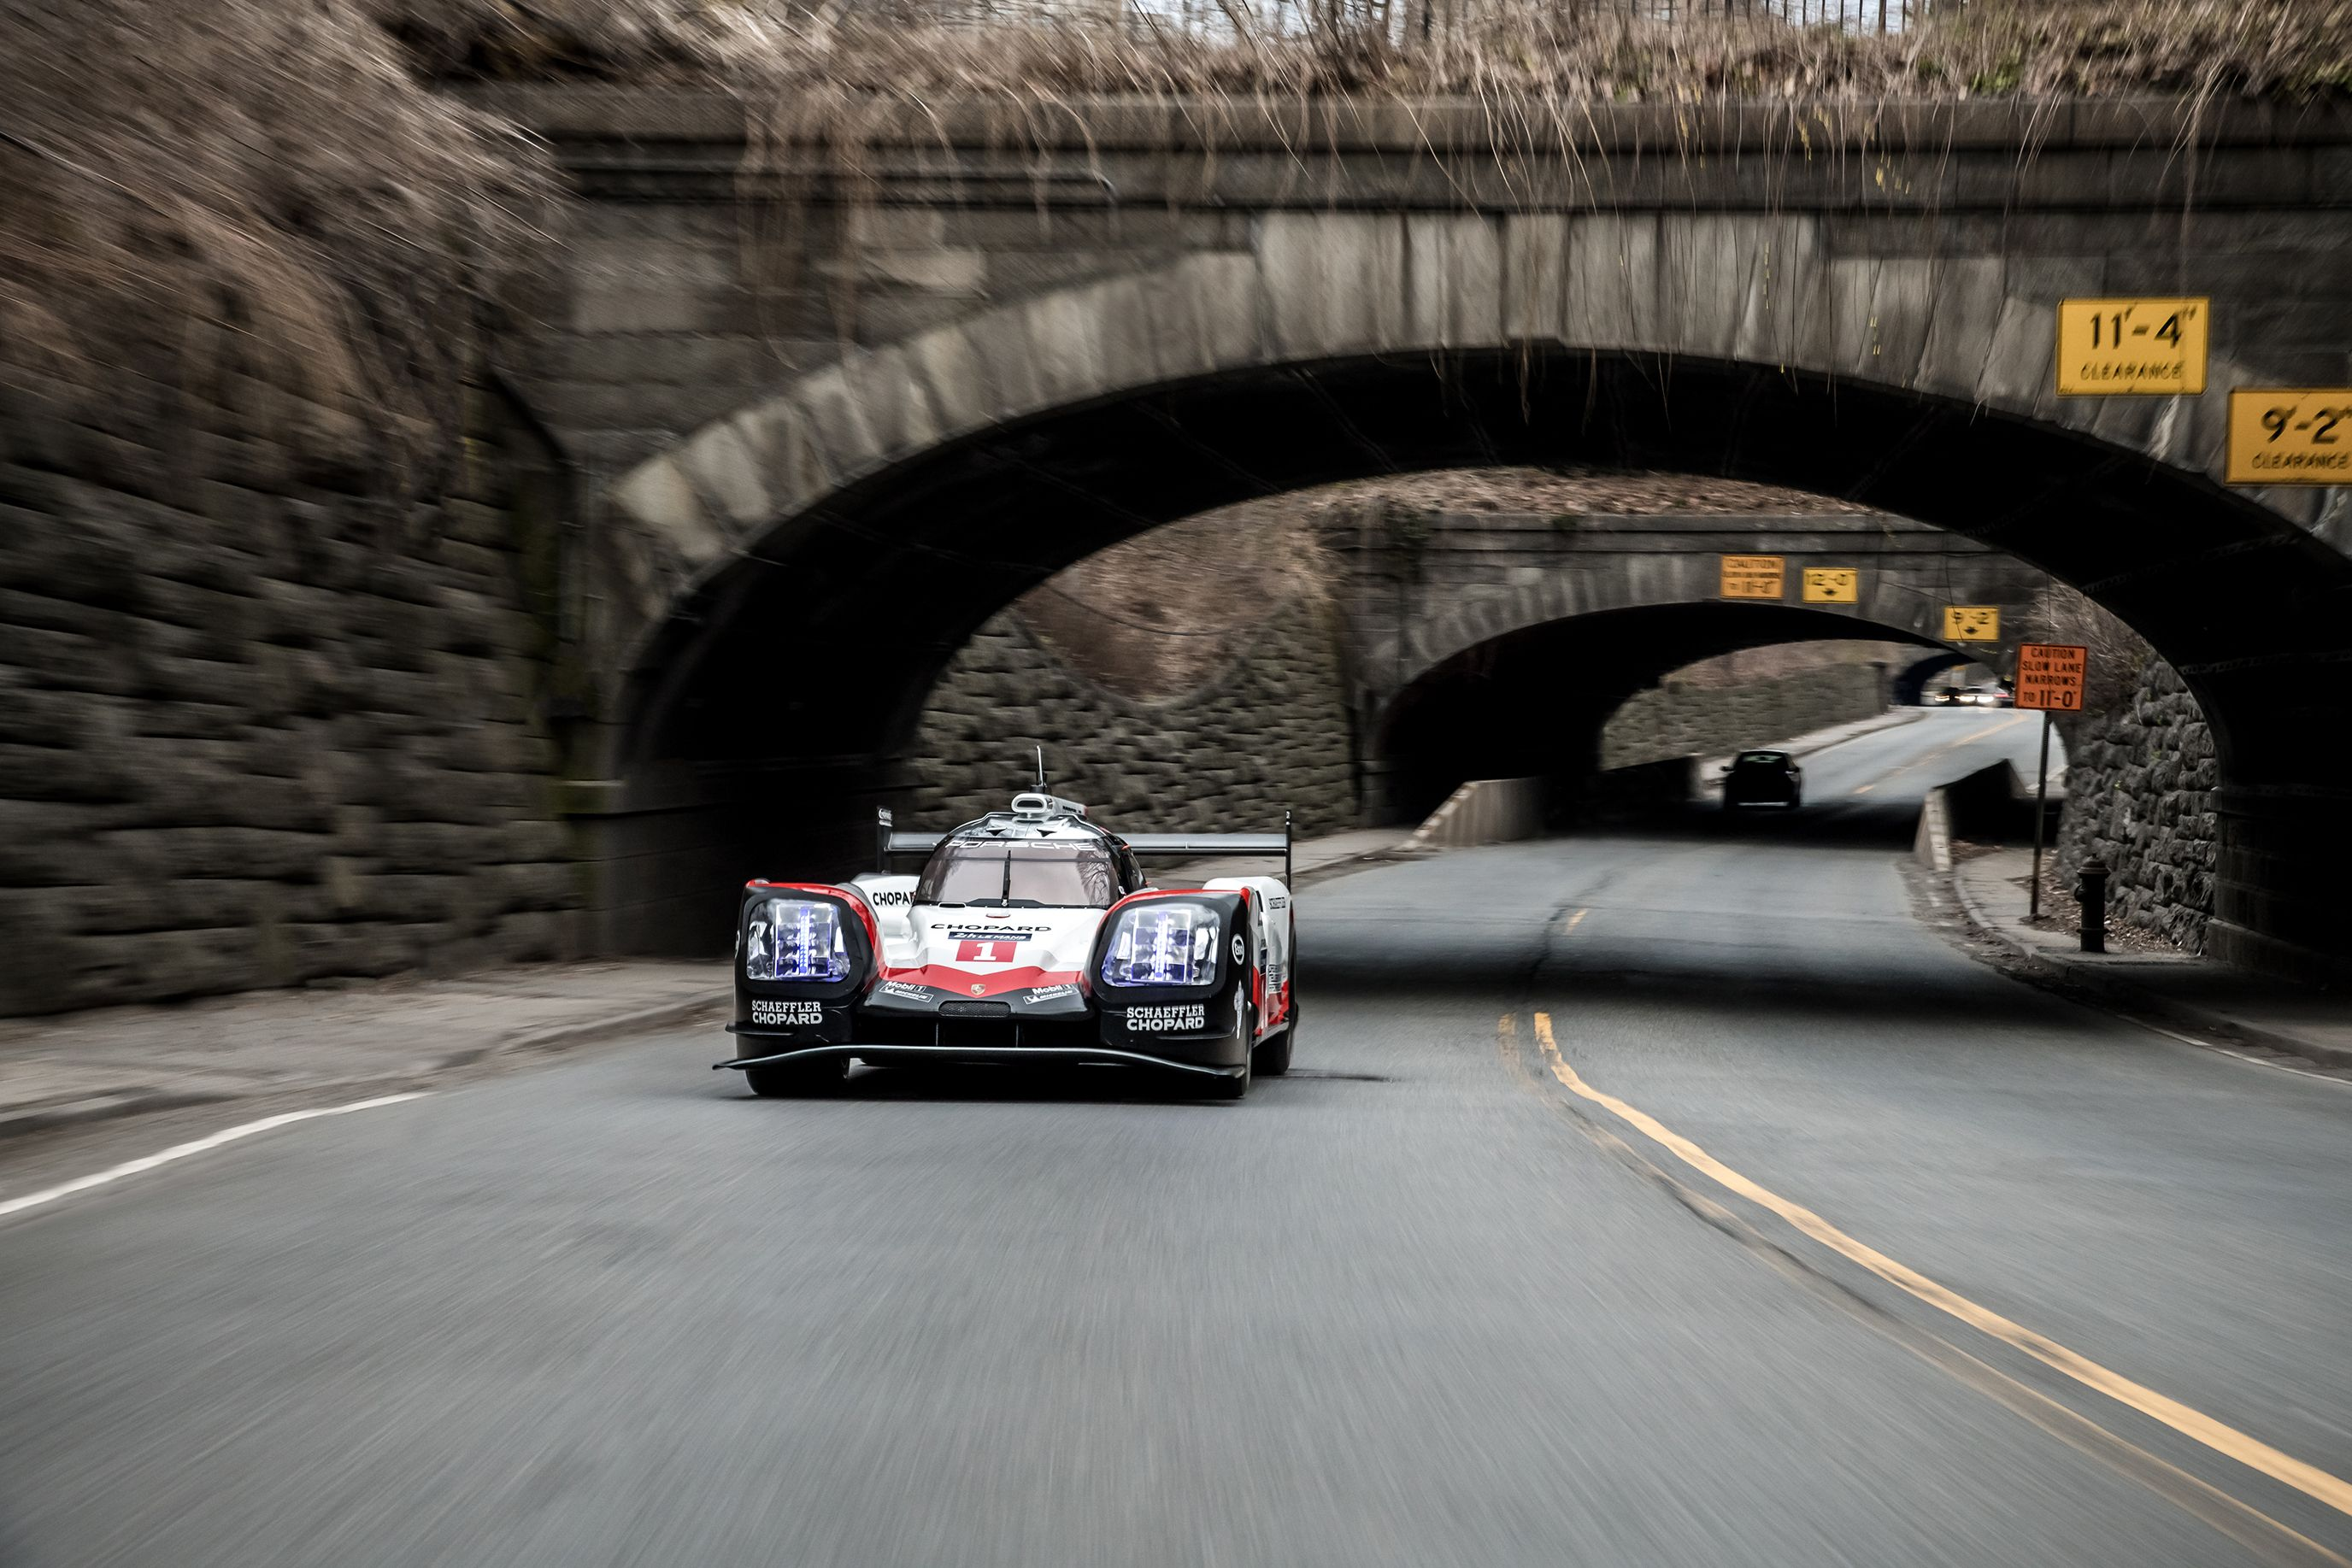 here's the porsche 919 on the streets of new york city